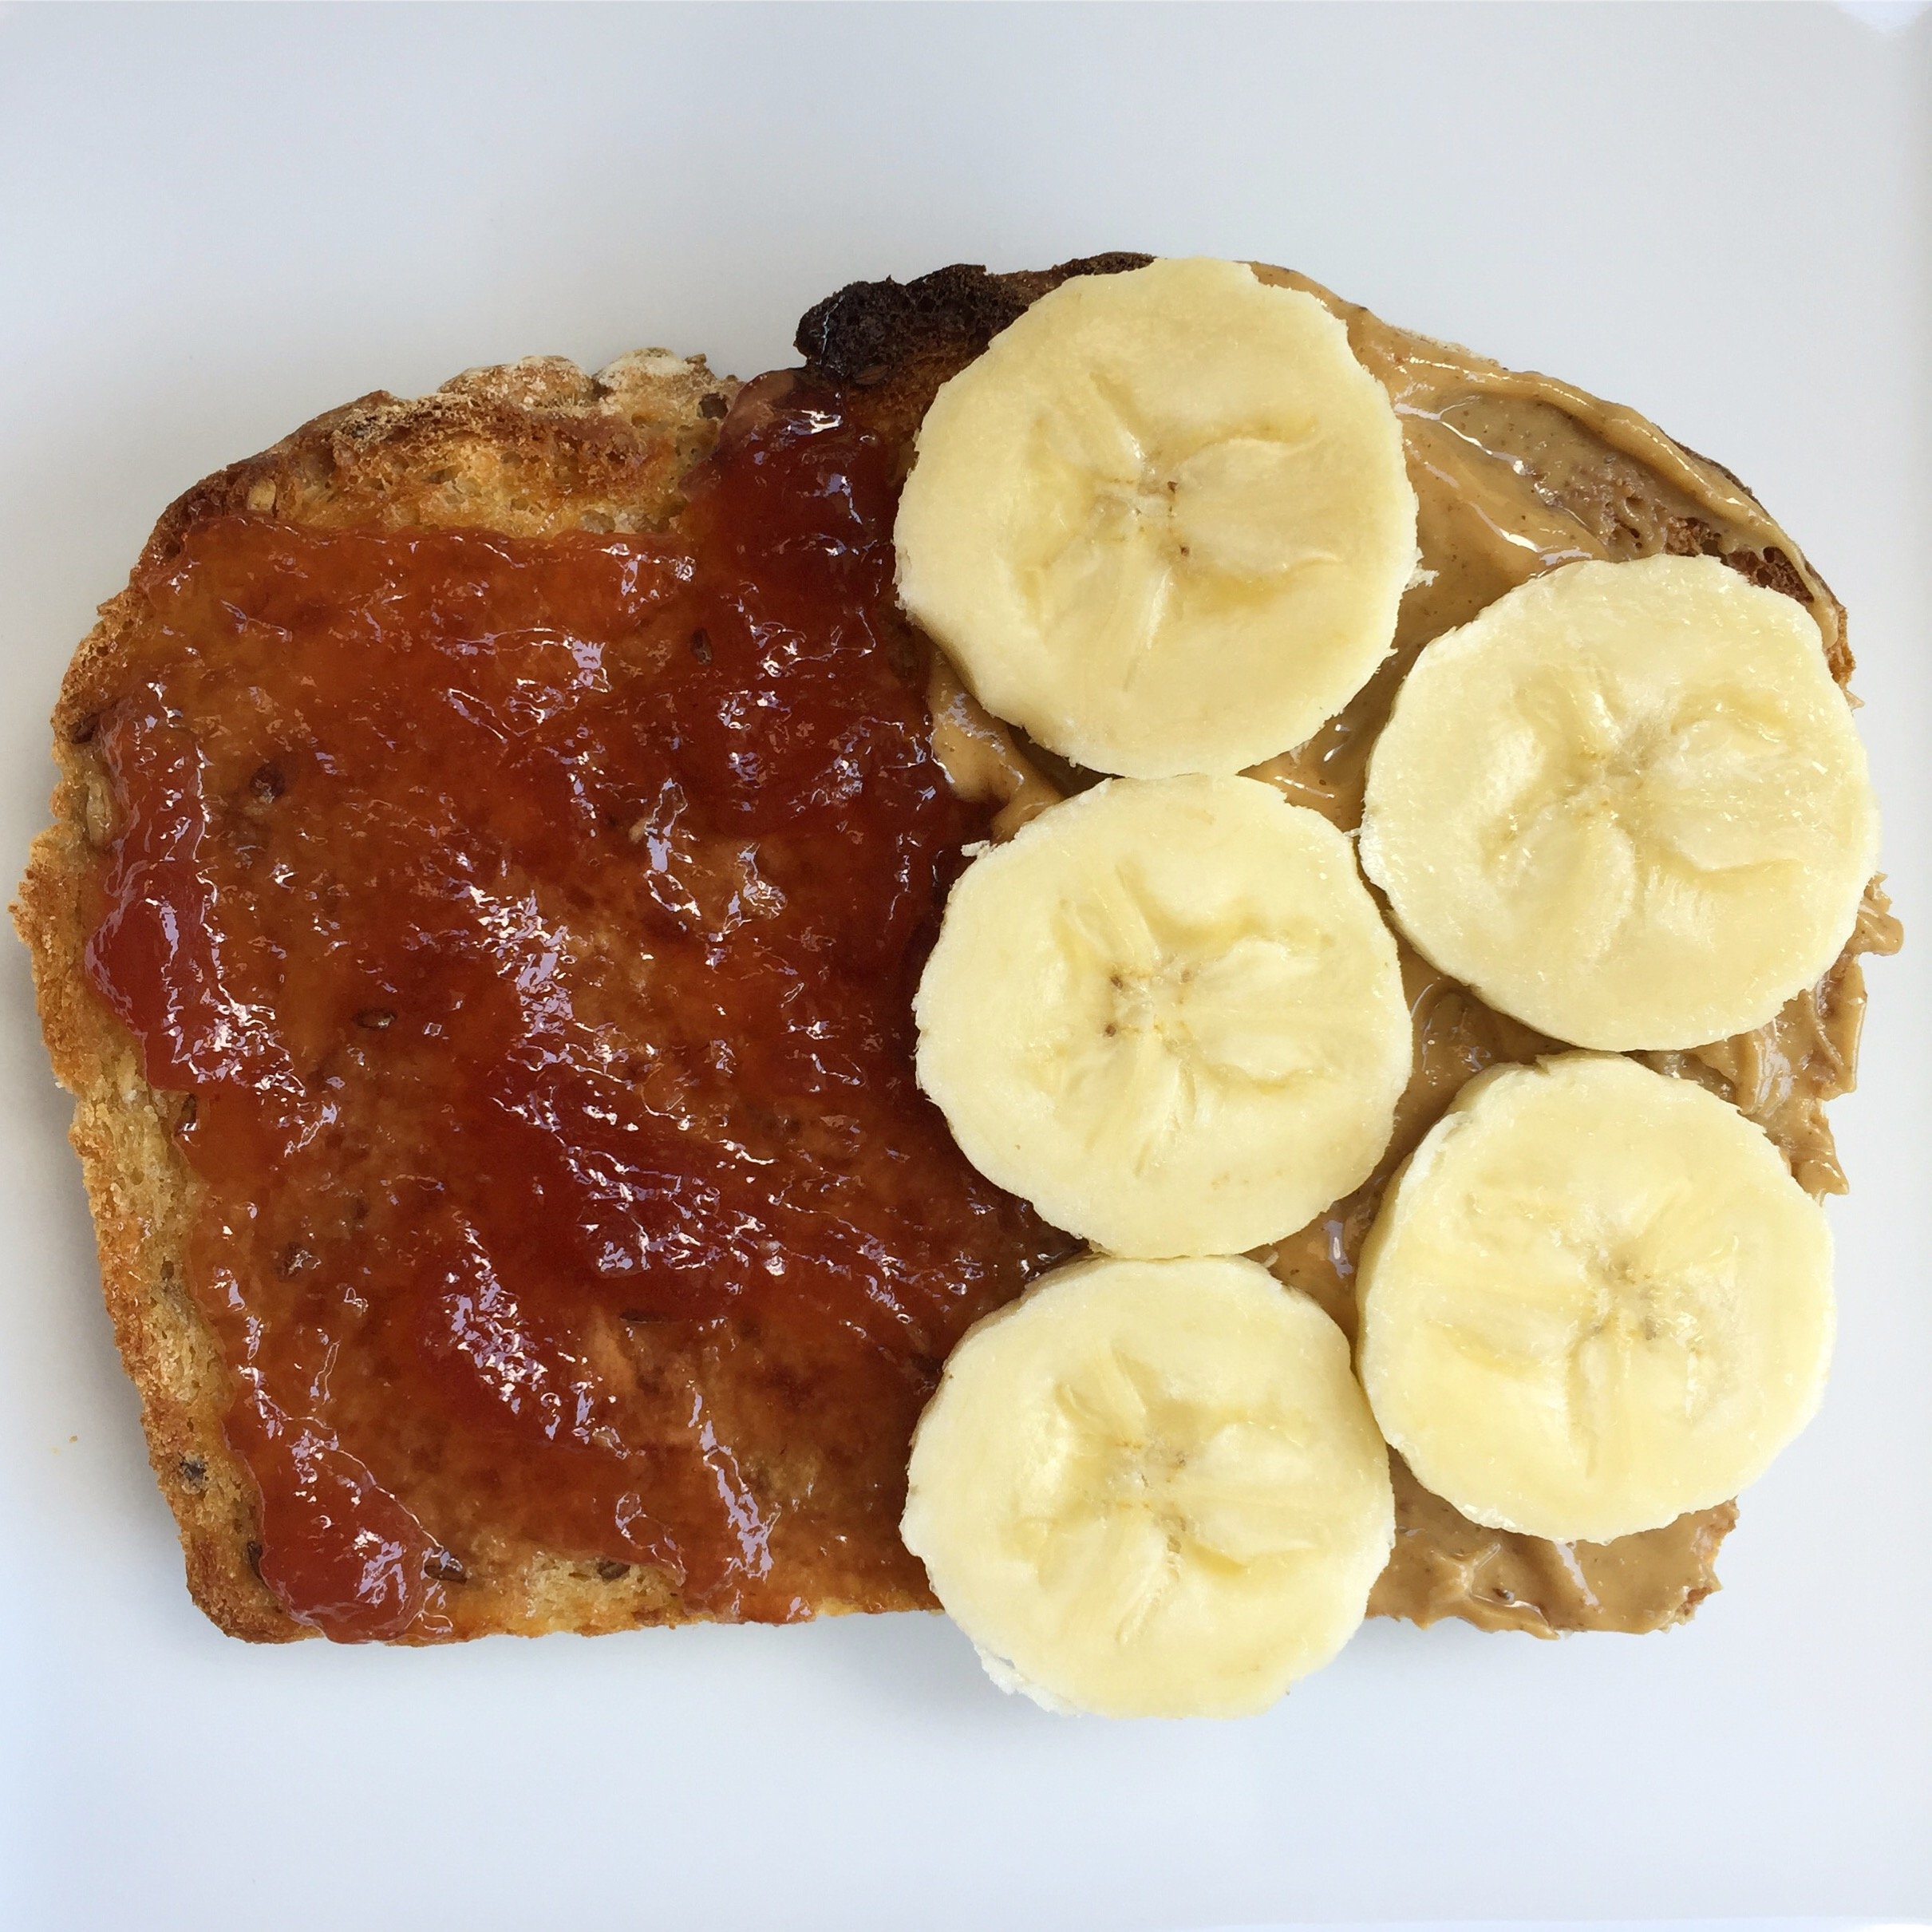 Homemade  whole wheat bread ...1/2 with butter and strawberry jelly + 1/2 with crunchy Peanut Butter and banana